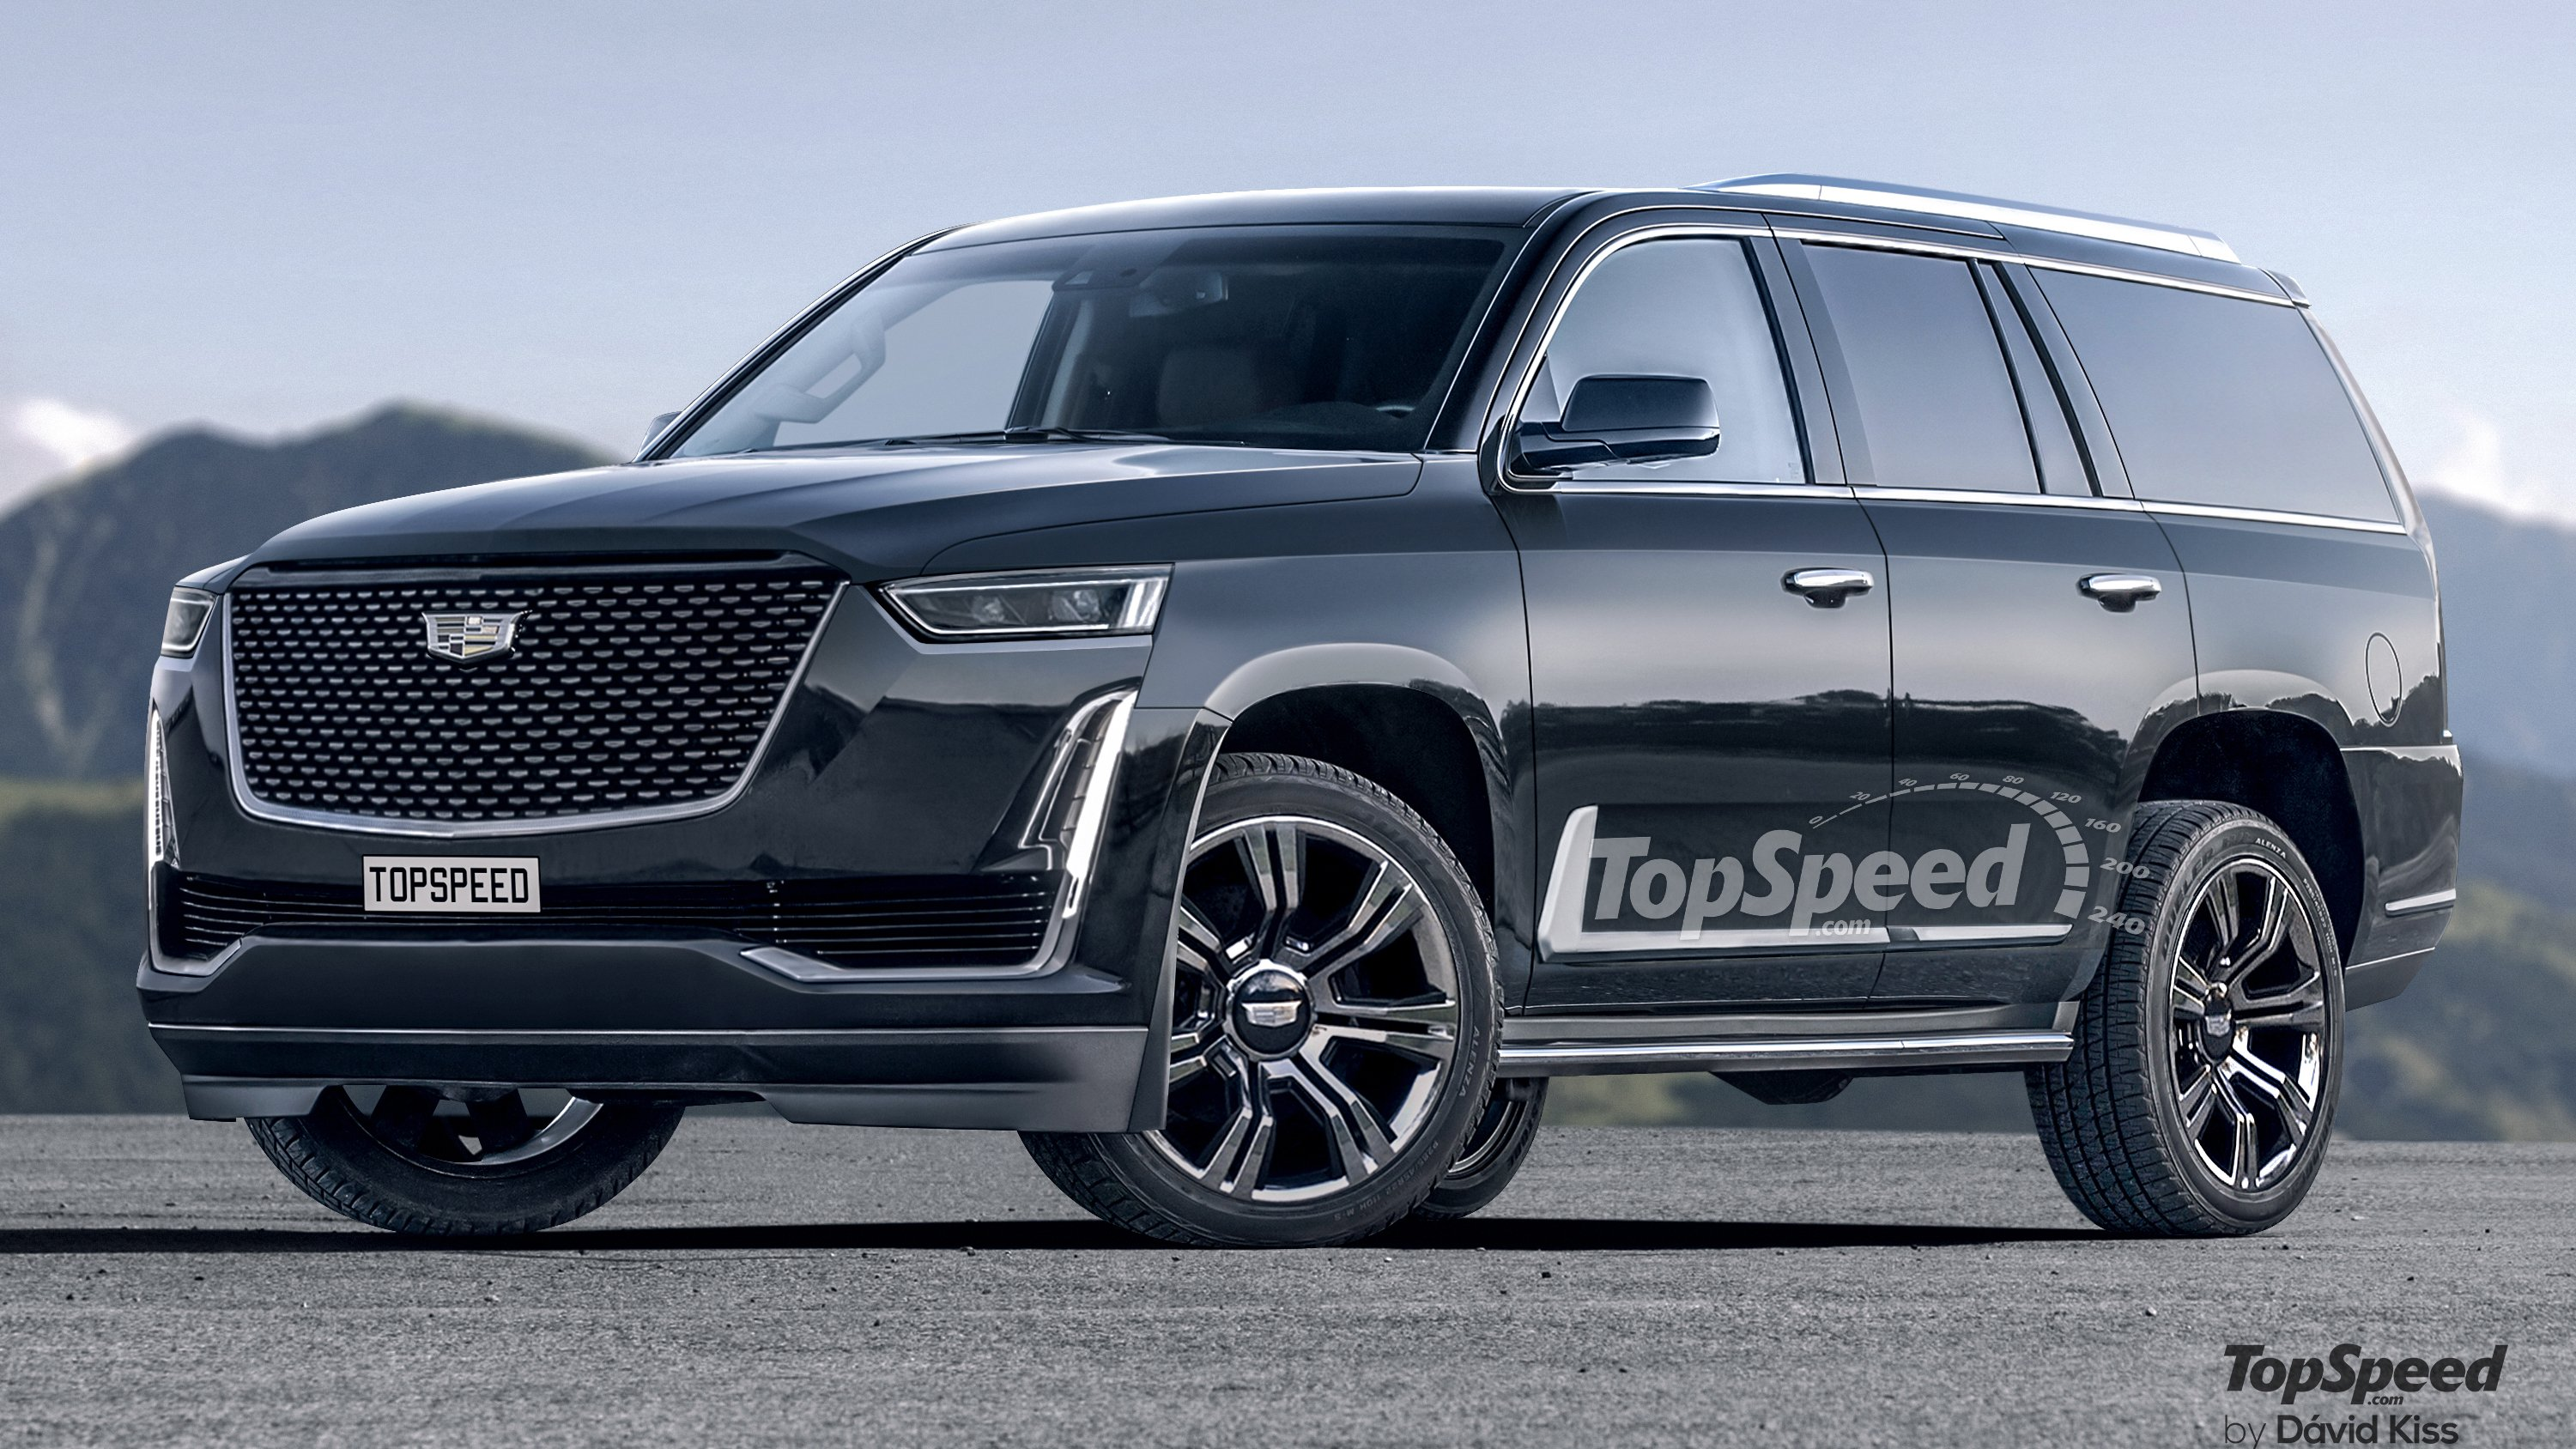 90 The Best 2020 GMC Yukon Denali Xl Price and Review